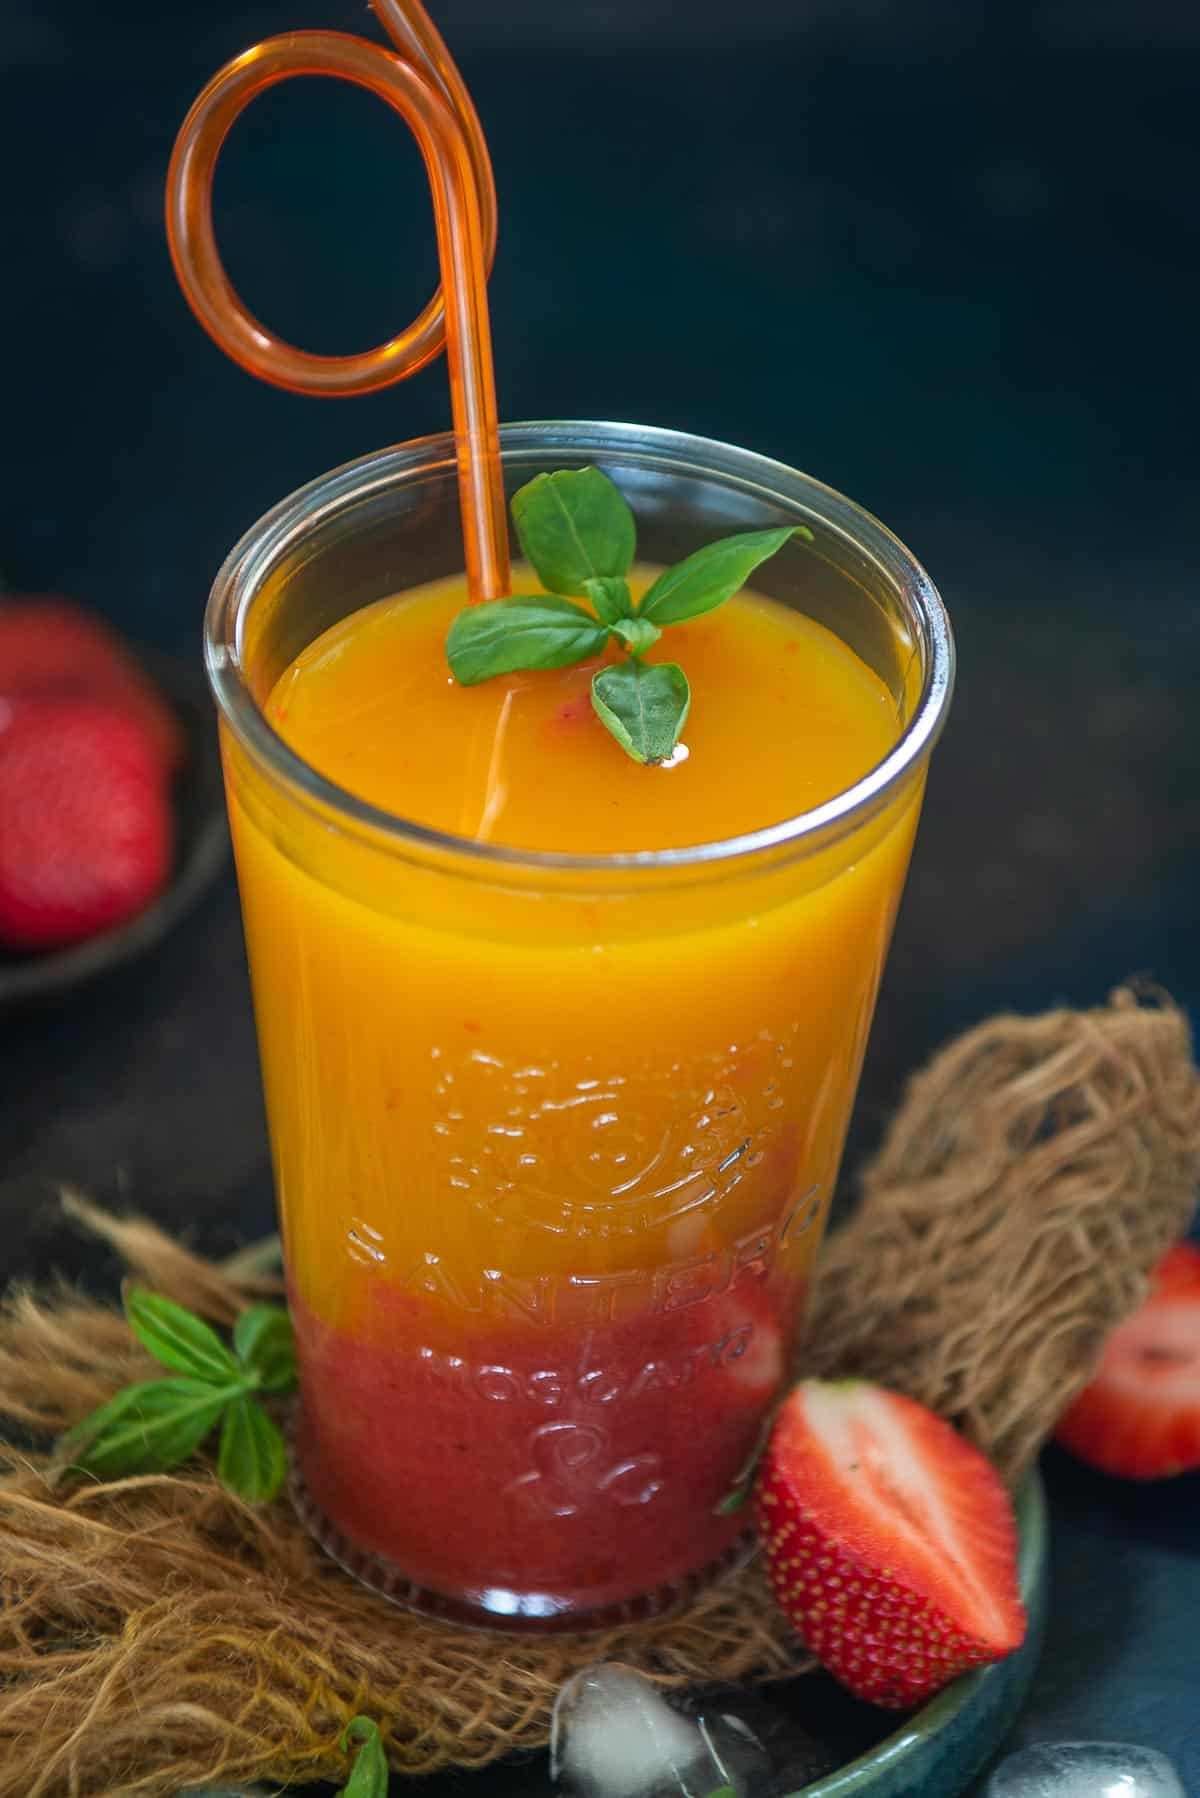 Mango strawberry surprise served in a glass.